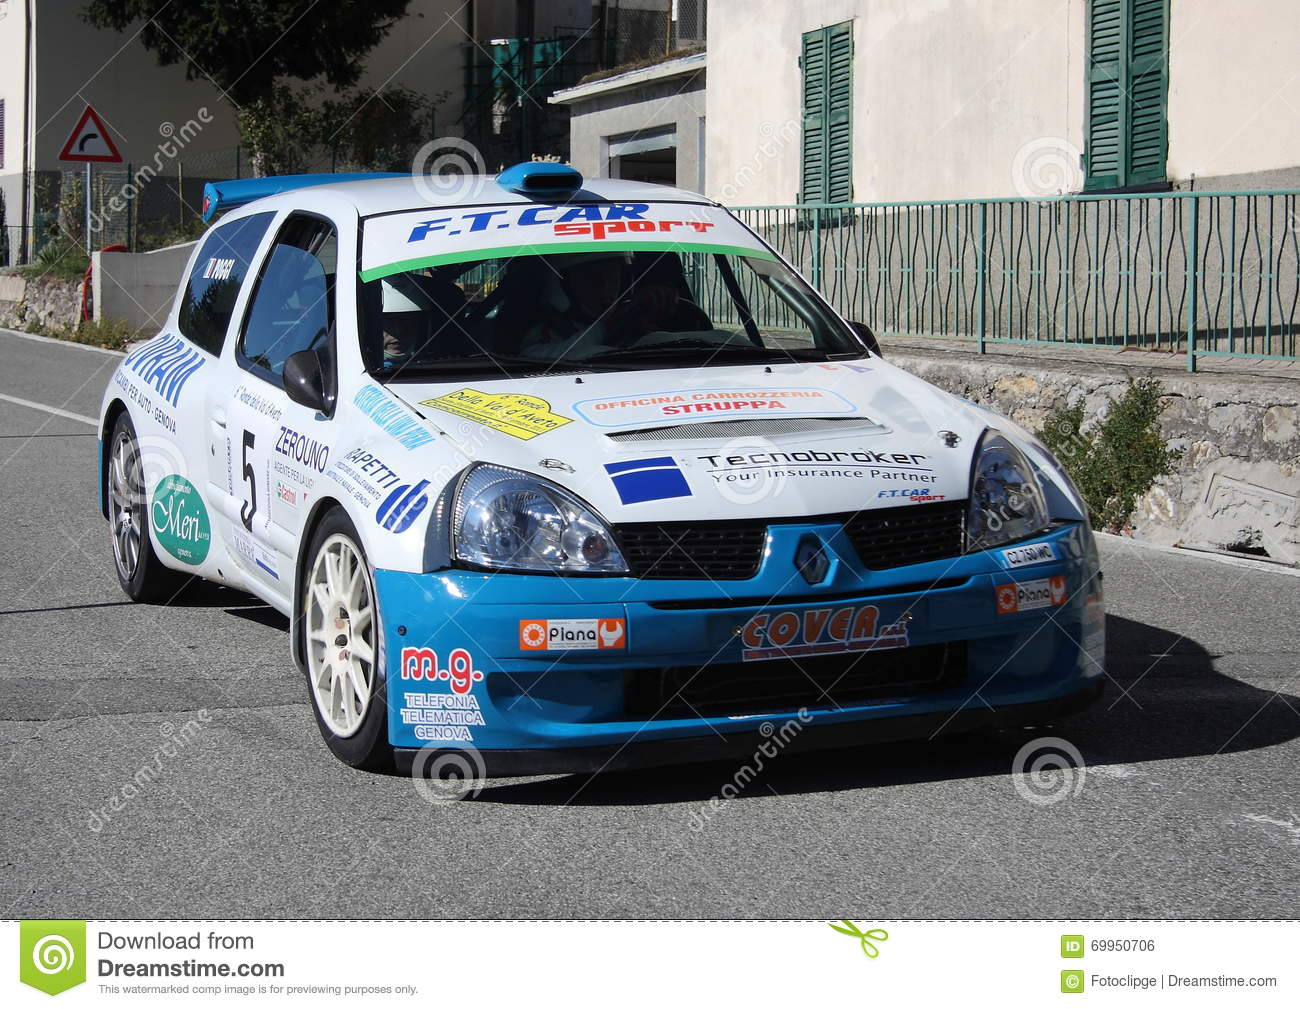 renault clio super 1600 rally car editorial photo image 69950706. Black Bedroom Furniture Sets. Home Design Ideas